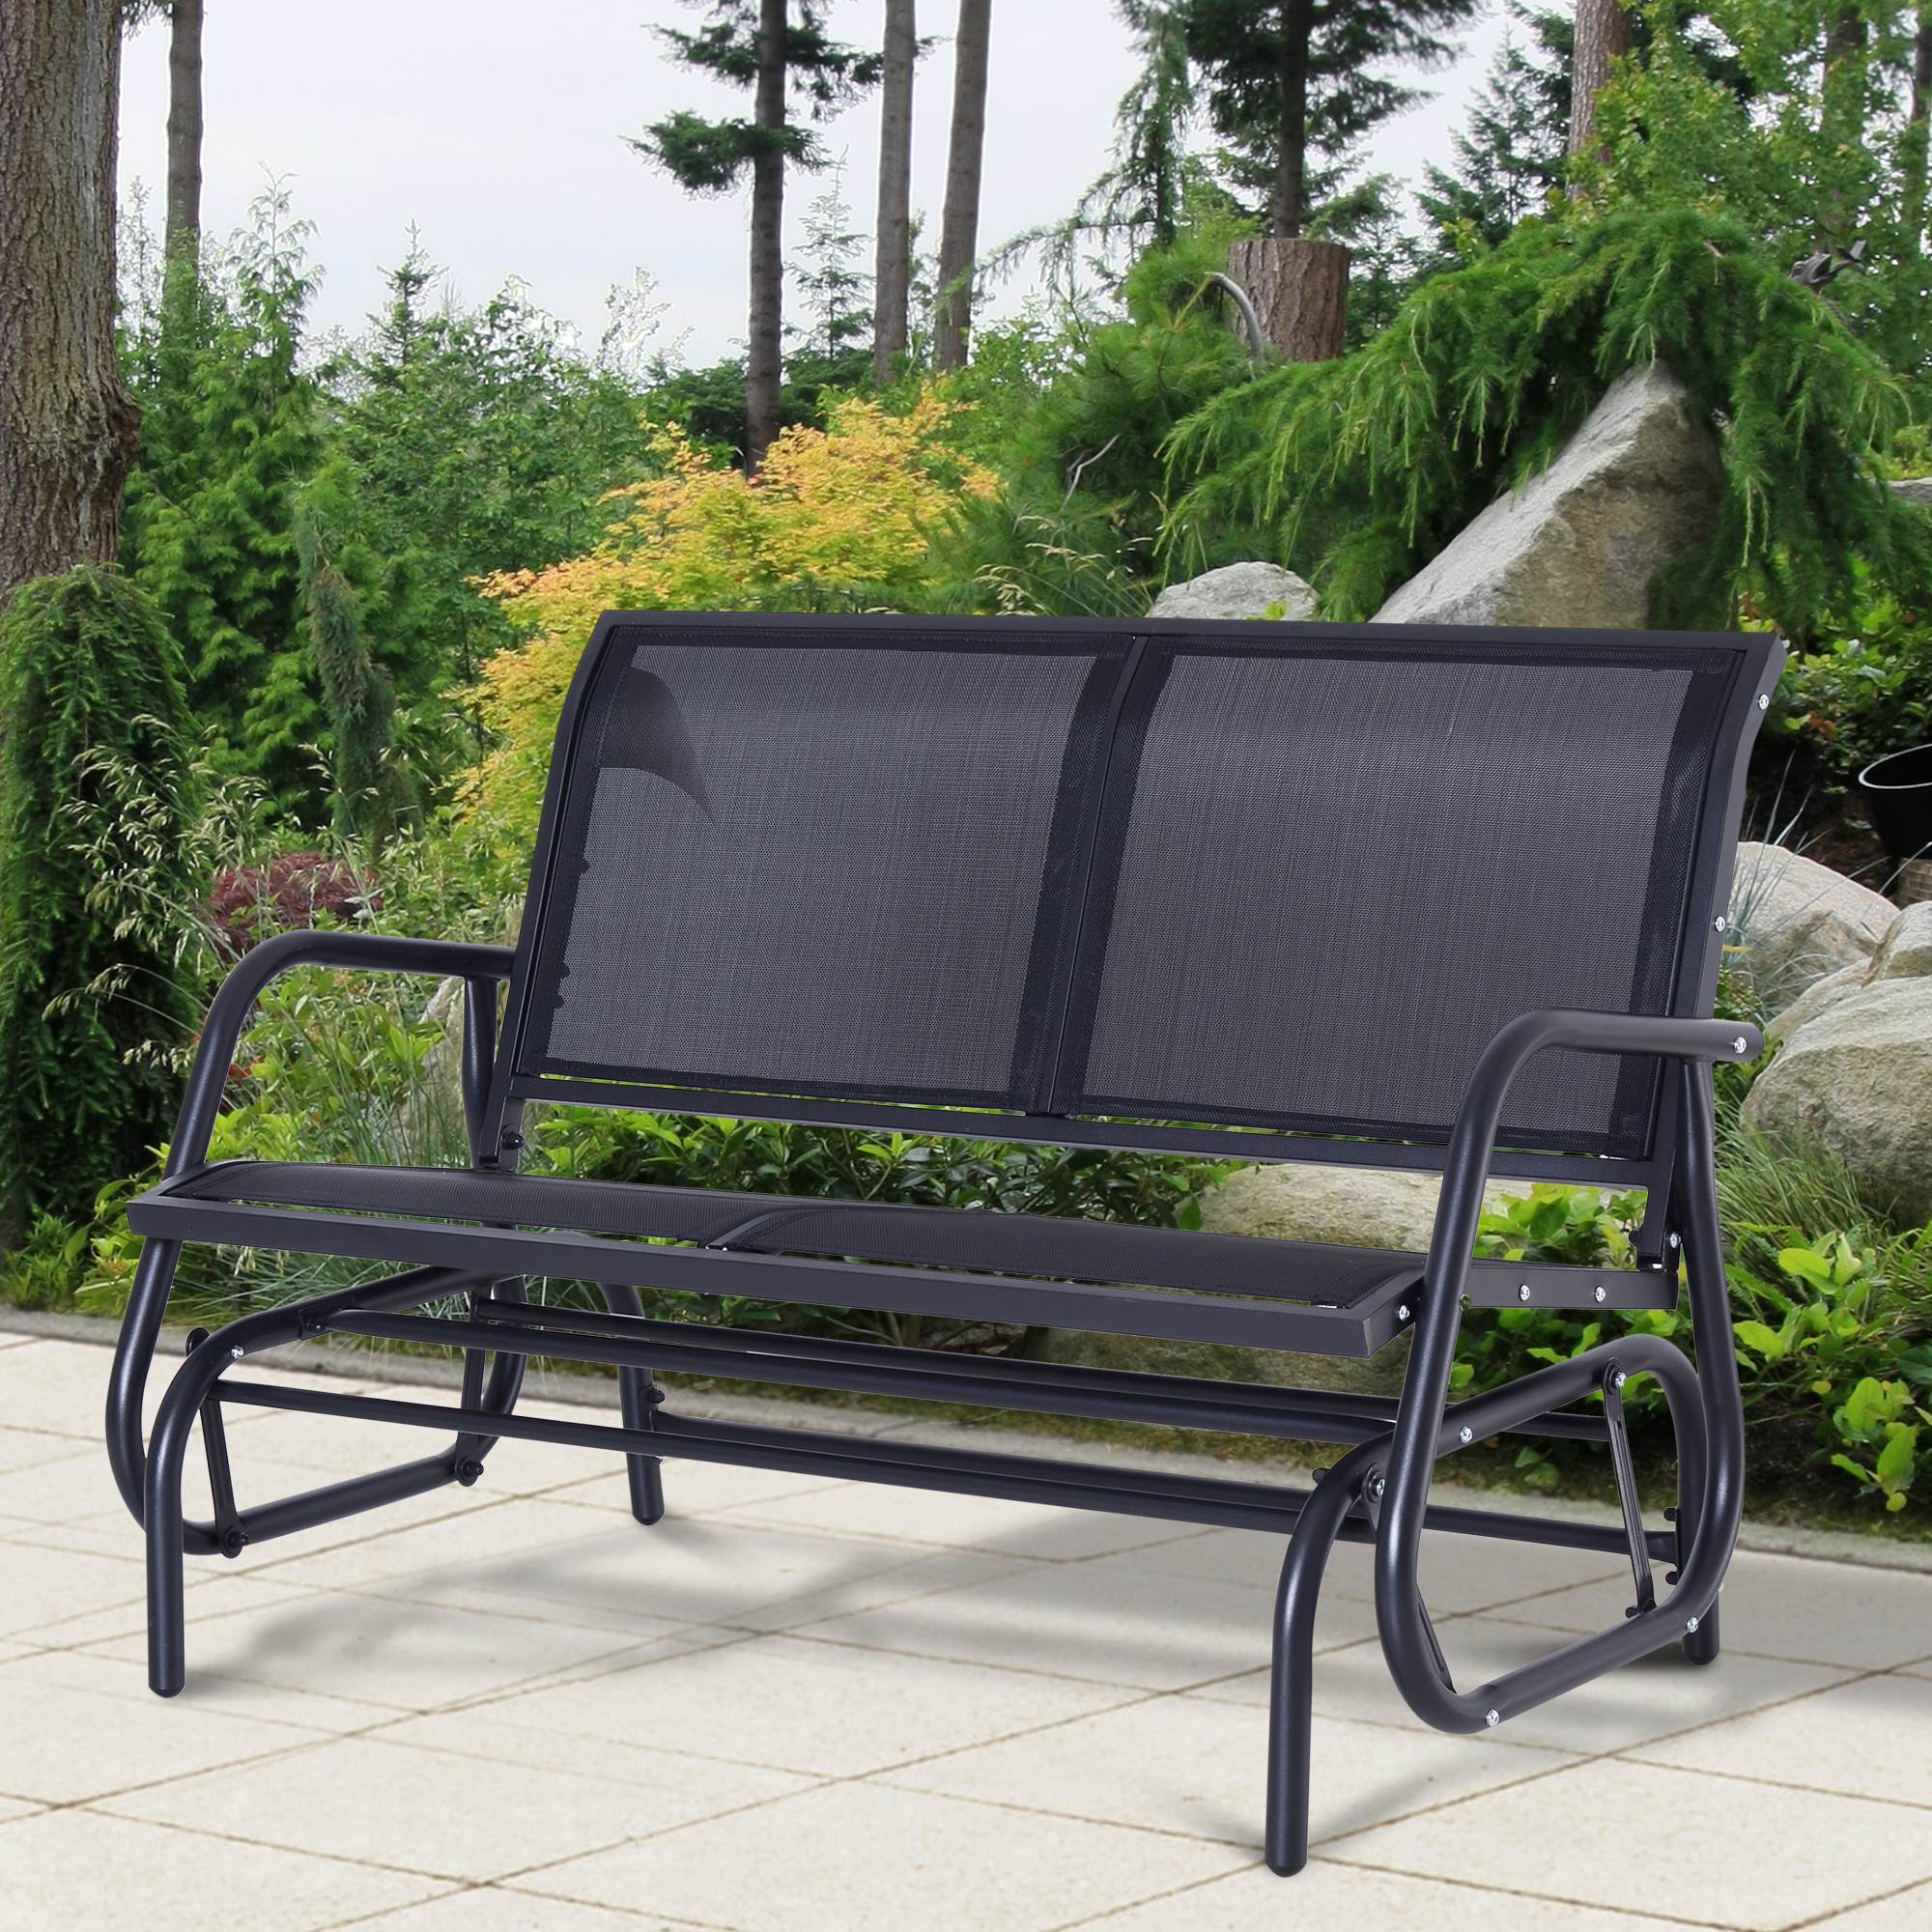 Details About Outsunny Patio Garden Glider Bench 2 Person Double Swing Chair Rocker Deck Black Within Trendy Aluminum Outdoor Double Glider Benches (View 19 of 30)